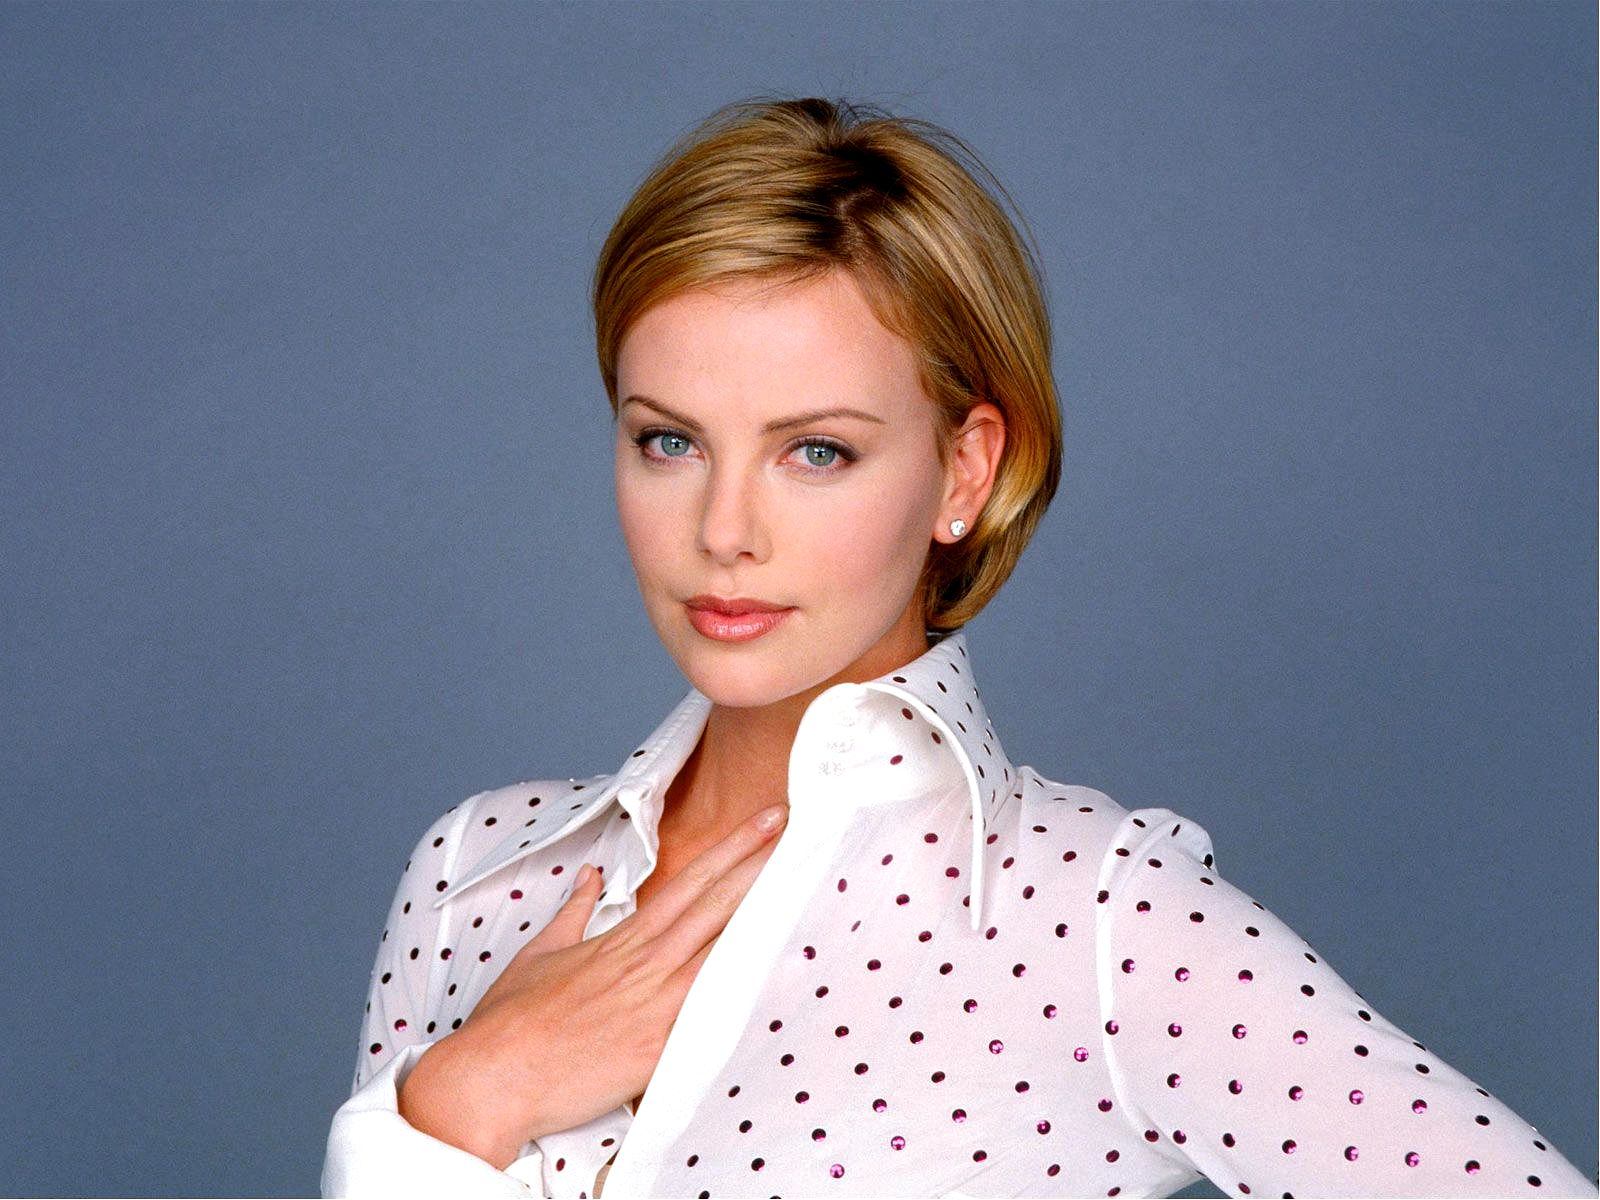 Charlize Theron Res: 1600x1200 / Size:245kb. Views: 479577